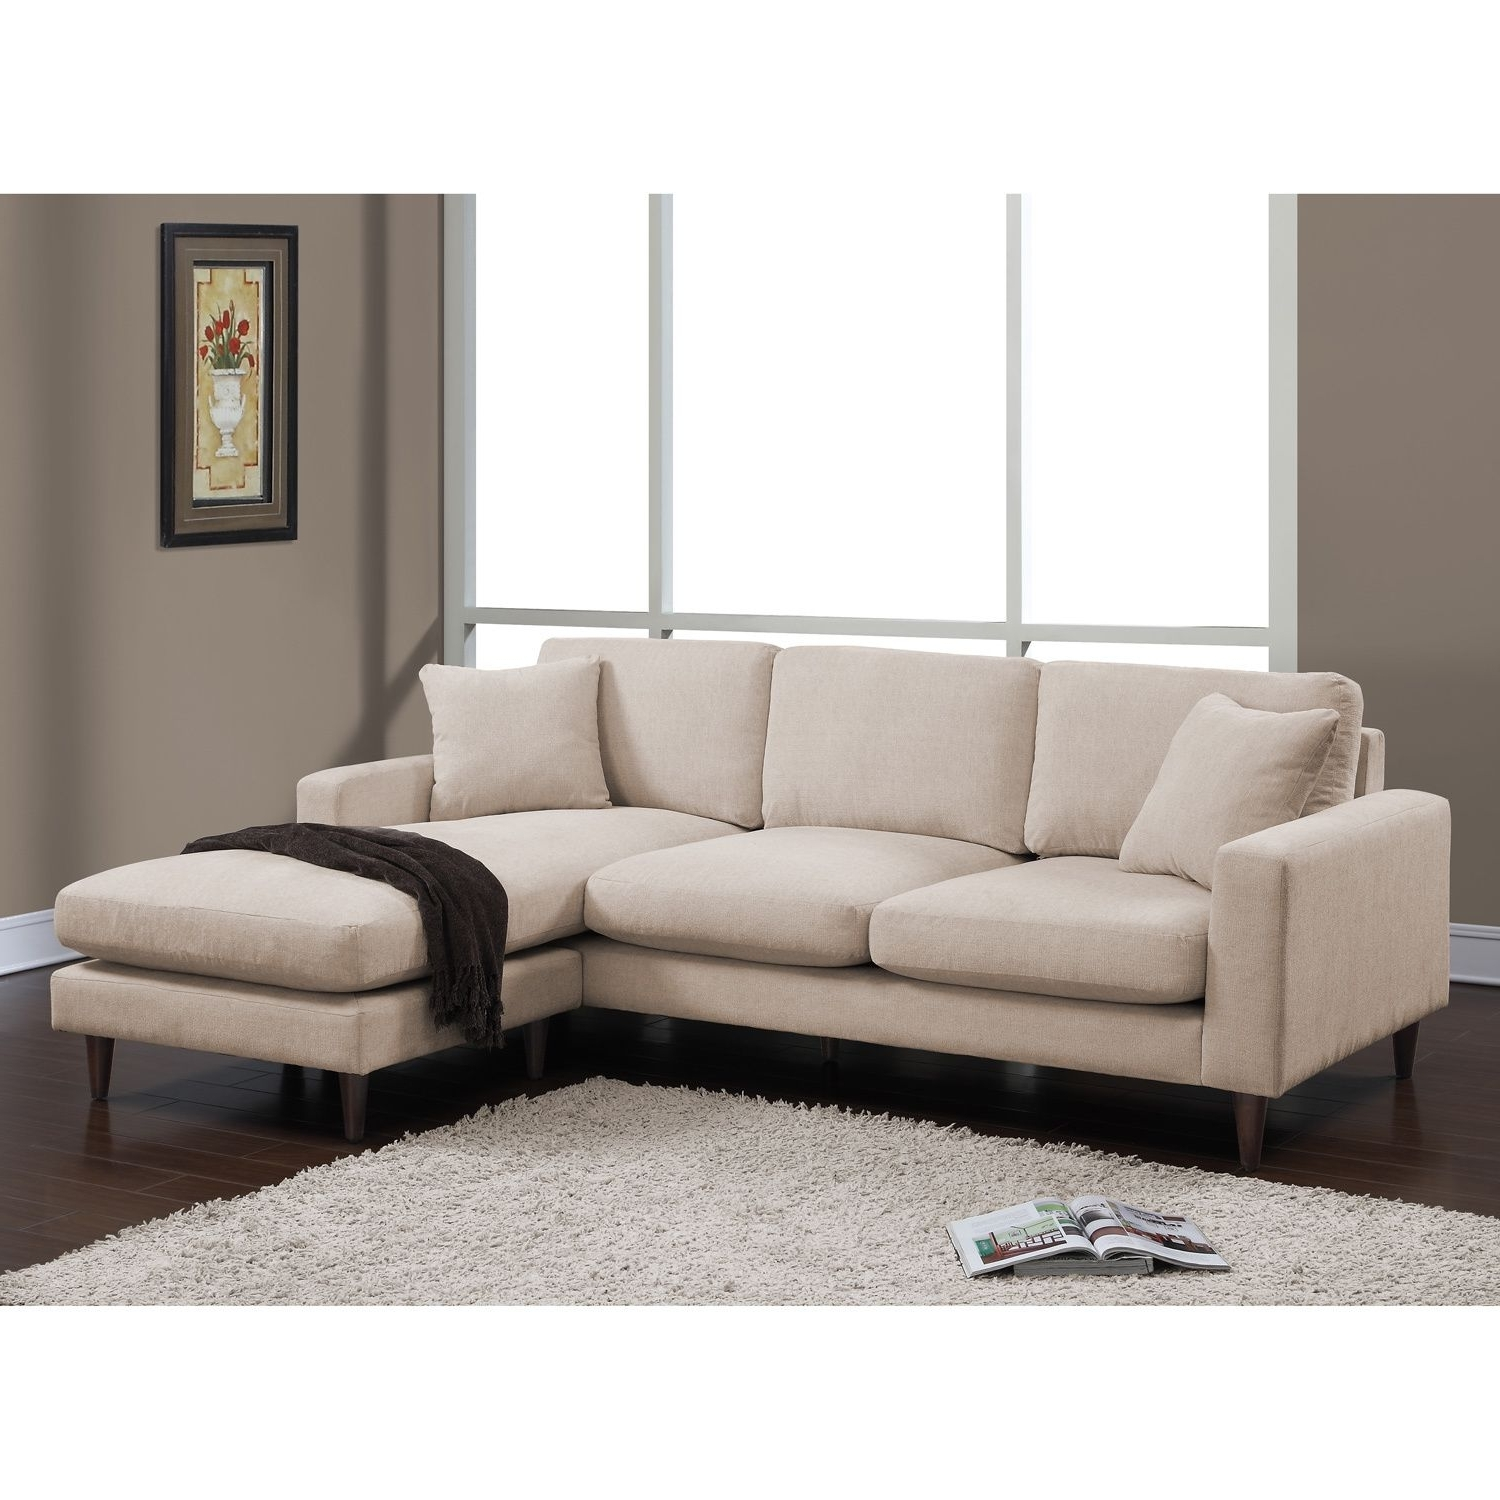 London Ontario Sectional Sofas Pertaining To Well Known Lounge In Total Comfort With The Shaffer Two Piece Sectional Made (View 18 of 20)